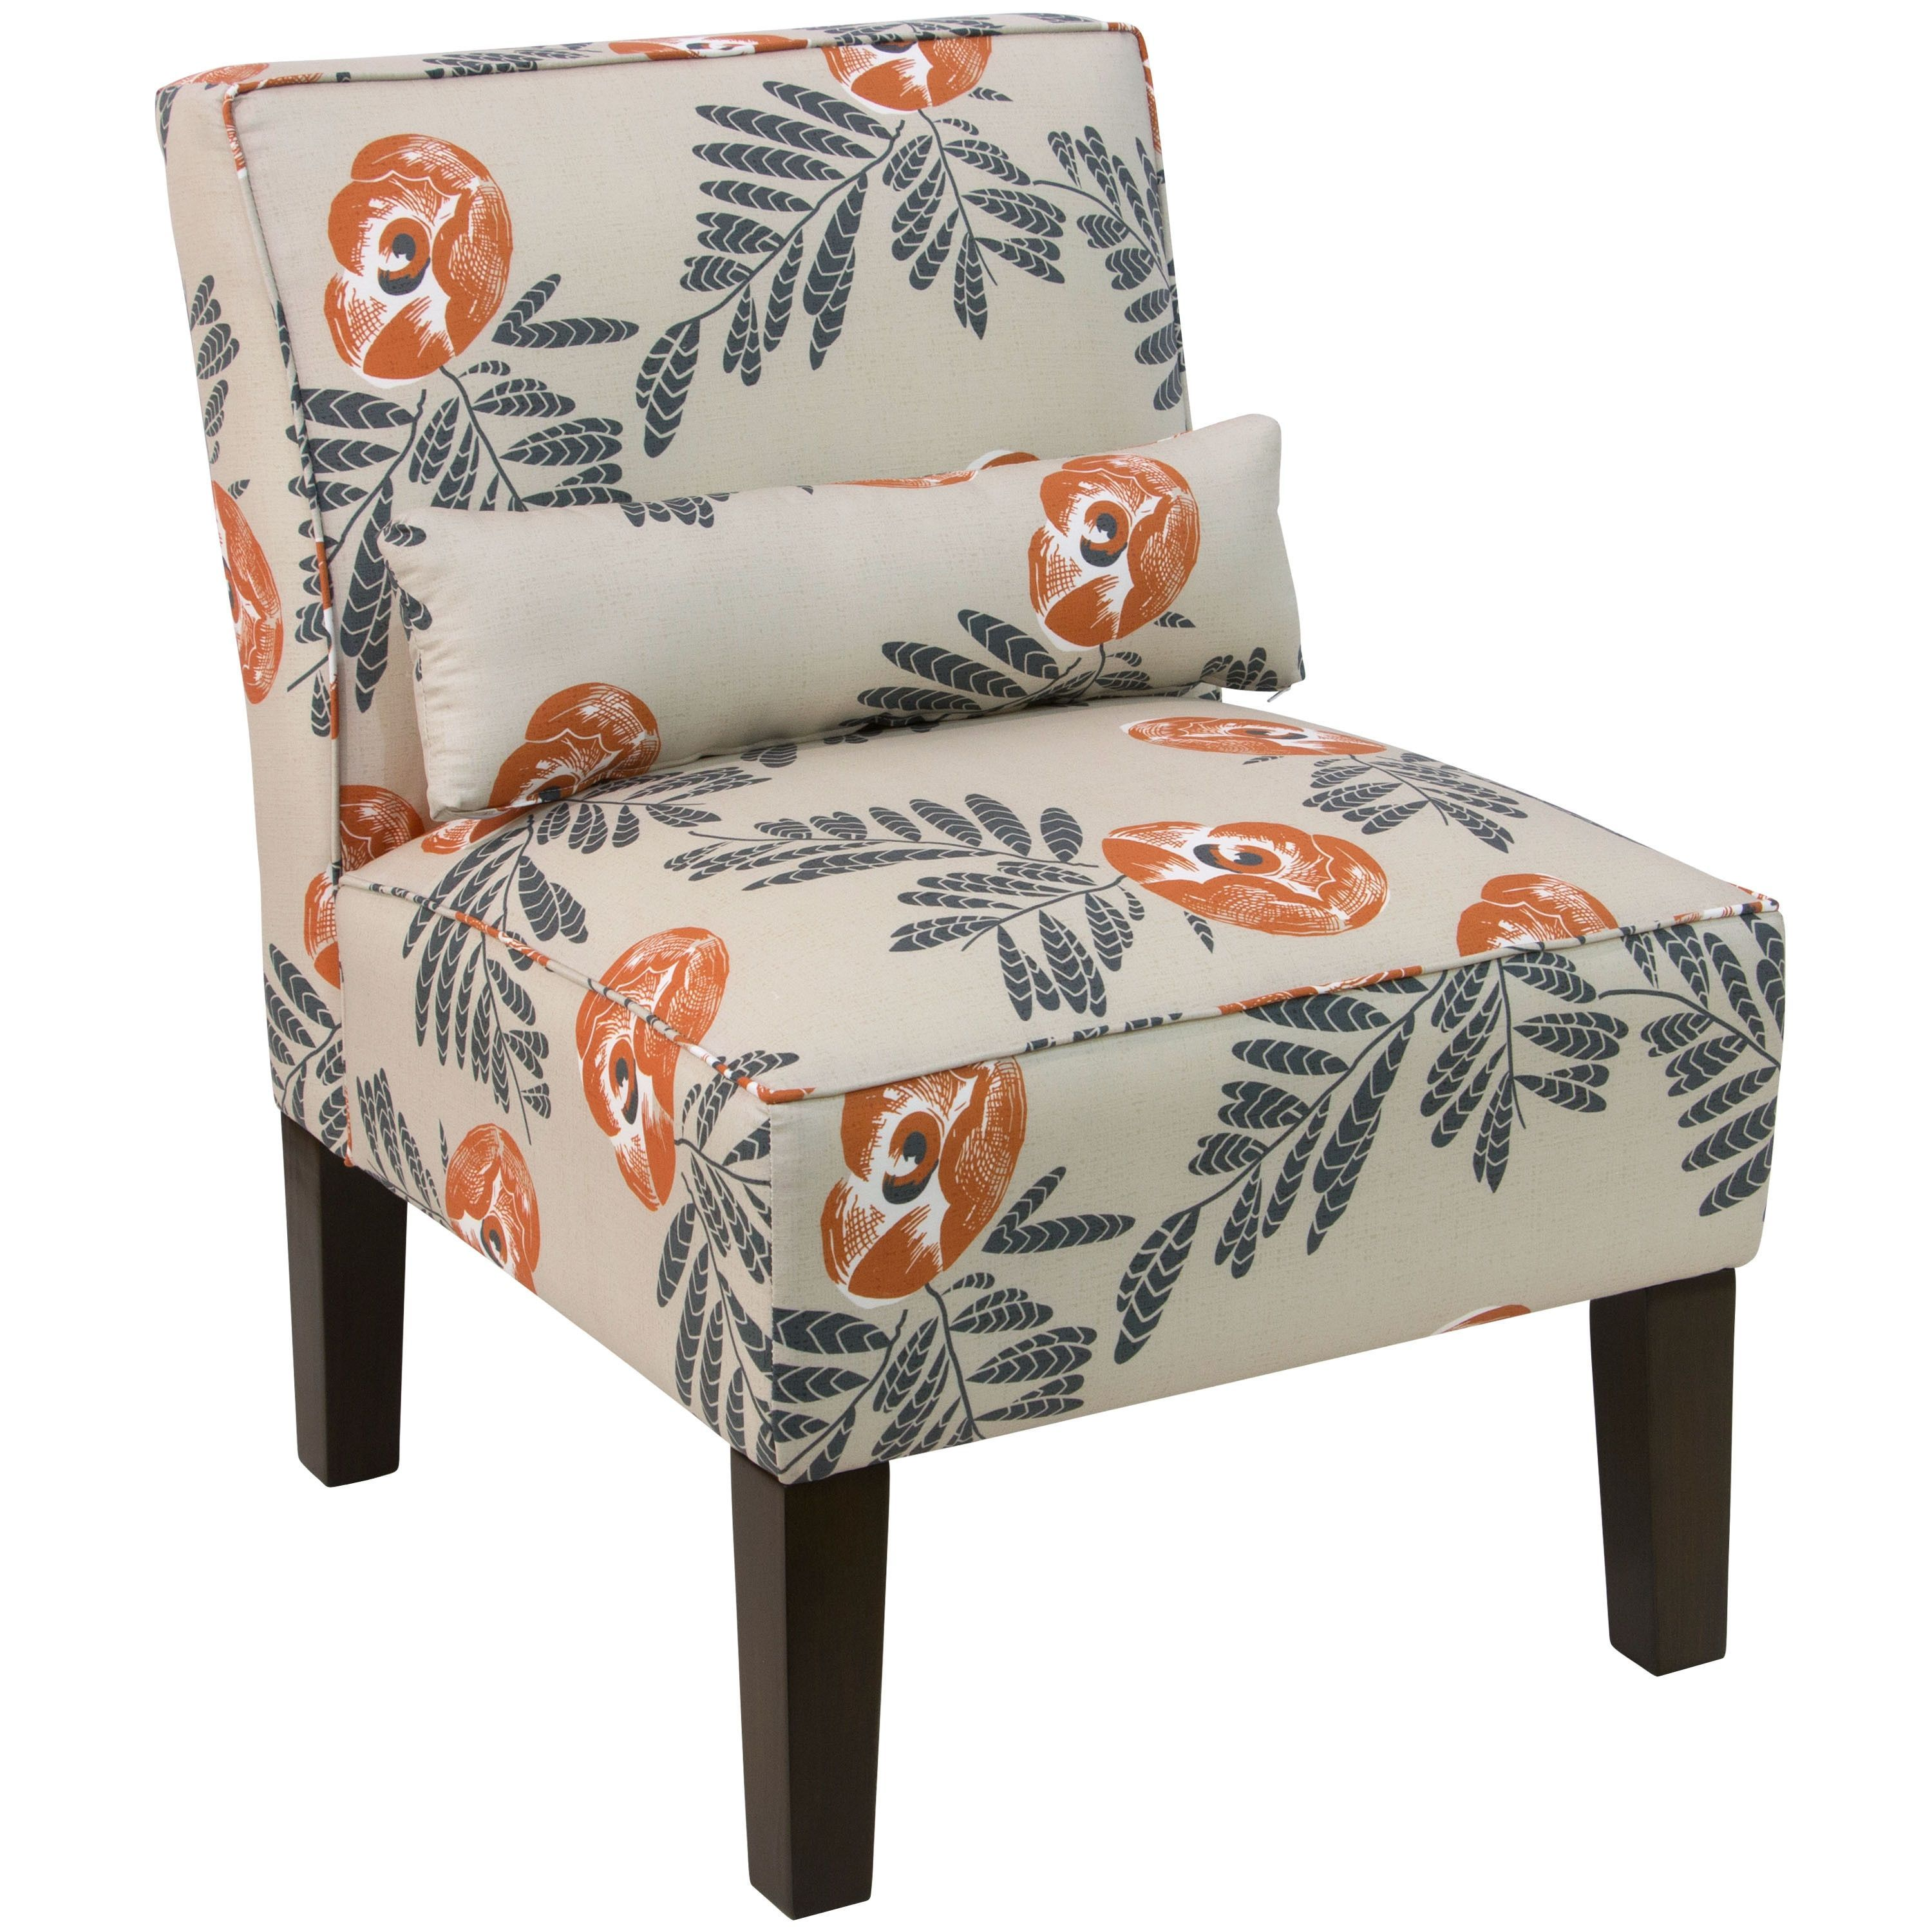 Skyline Cream Fabric With Orange Grey Floral Pattern Accent Chair